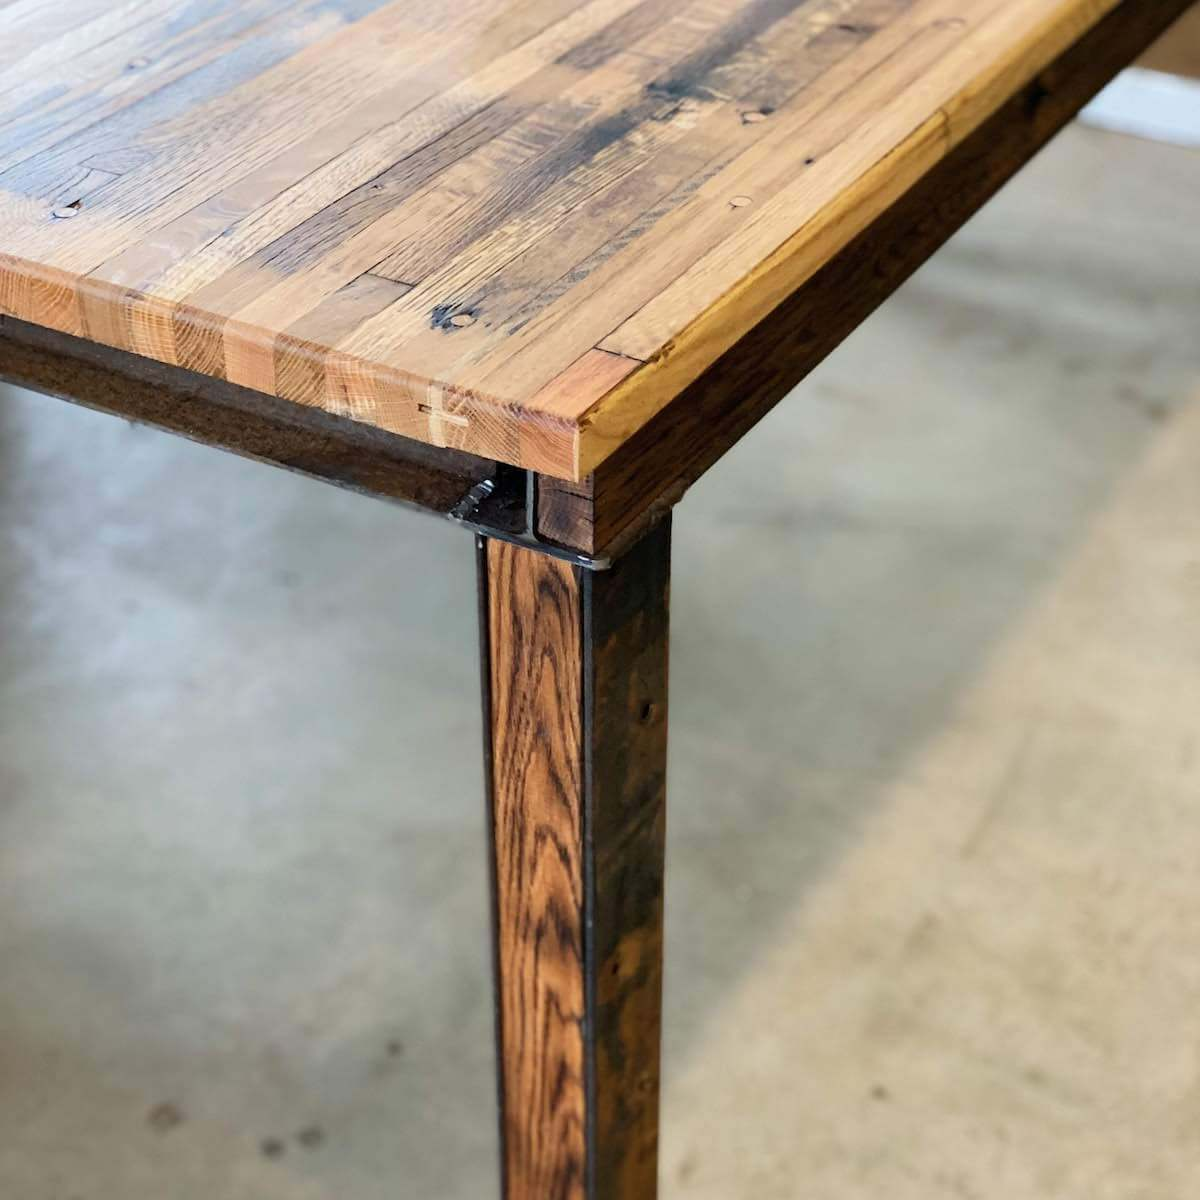 side view of inlaid wood leg on reclaimed wood table